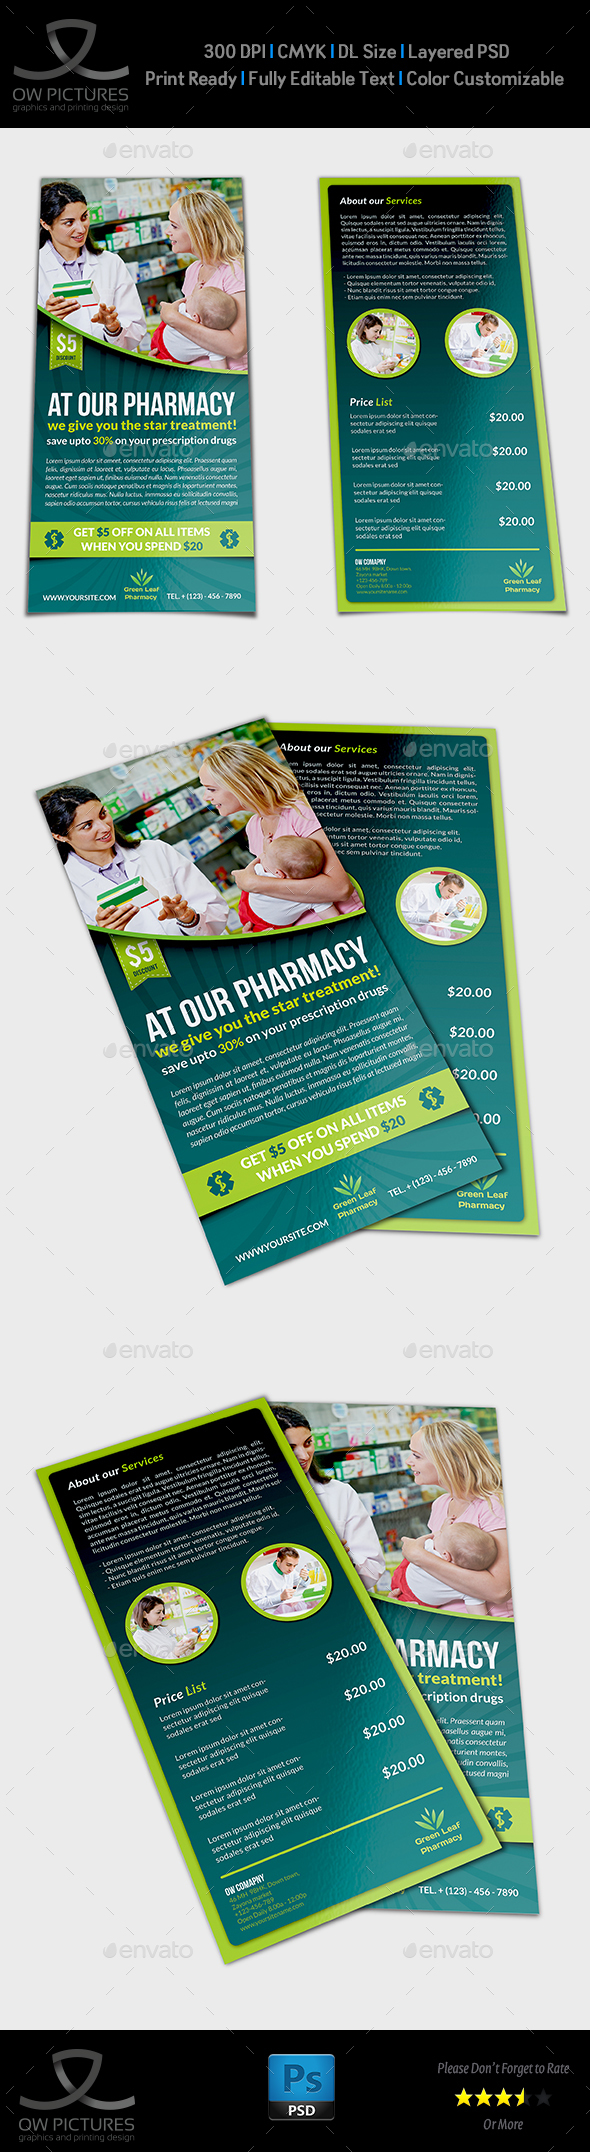 Pharmacy Flyer DL Size Template - Flyers Print Templates